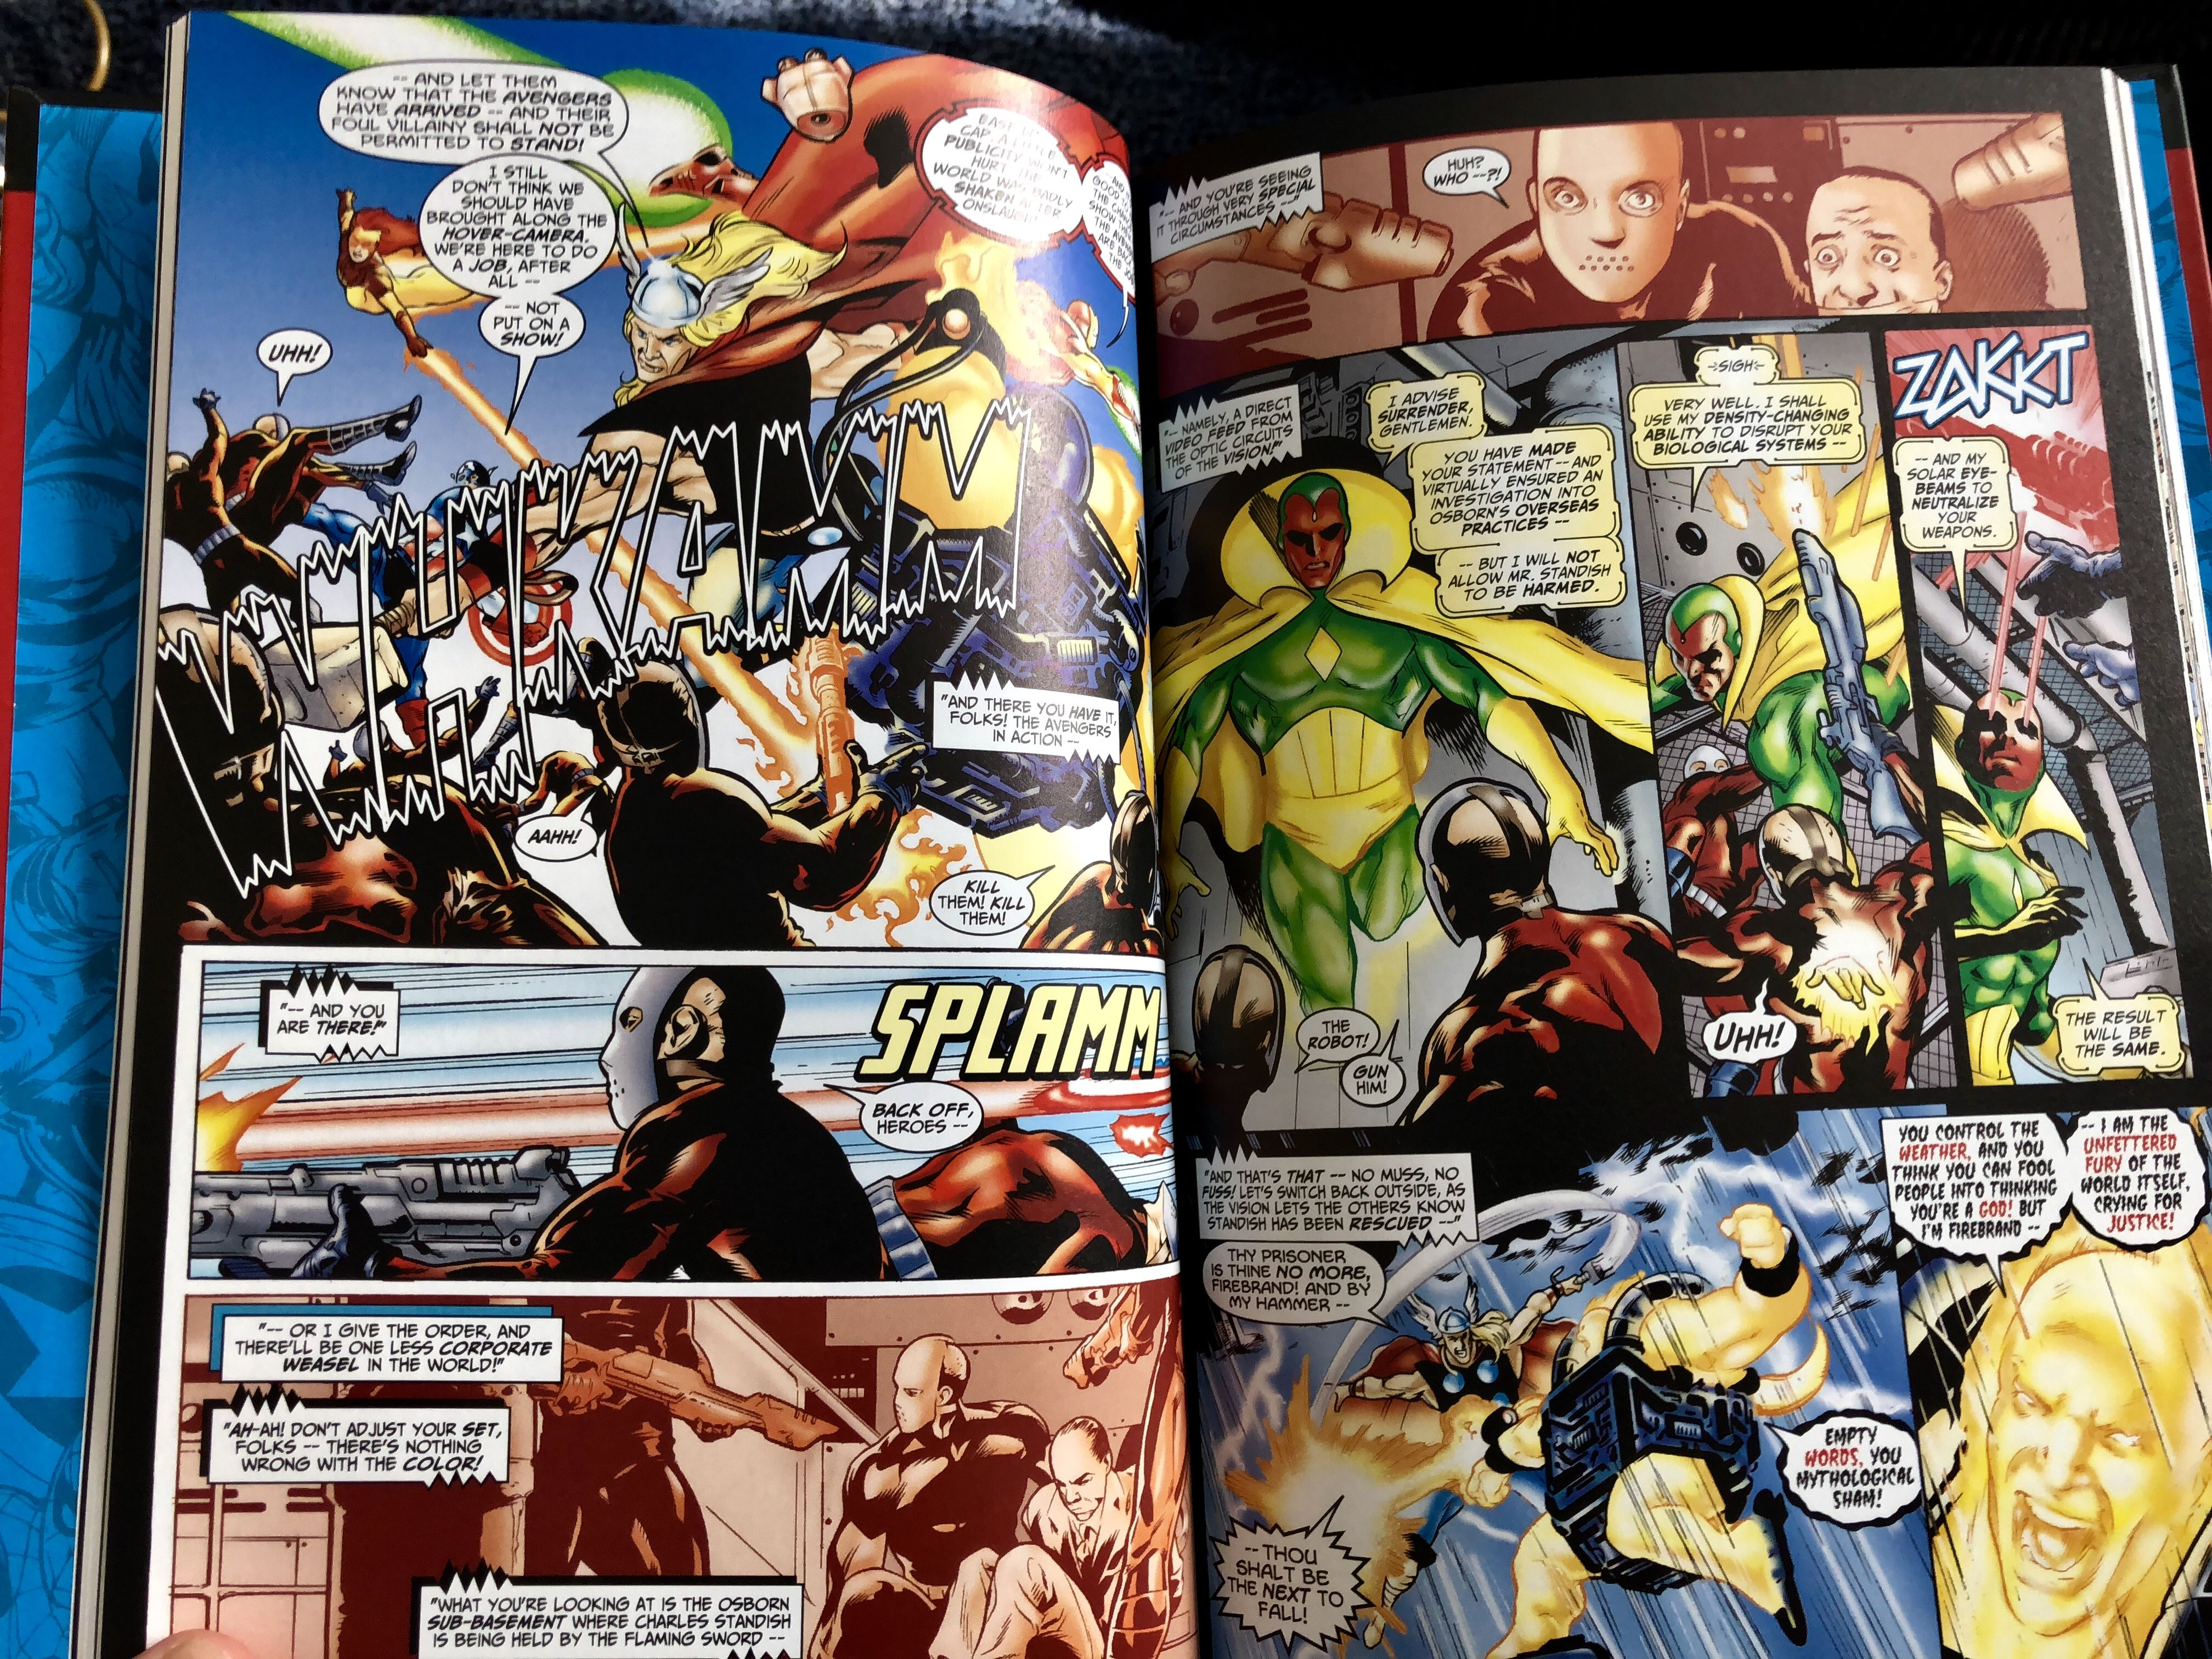 24 The Avengers Marvel S Mightiest Heroes Graphic Novel Hachette Partworks 2nd Series Graphic Novel Comics Novels